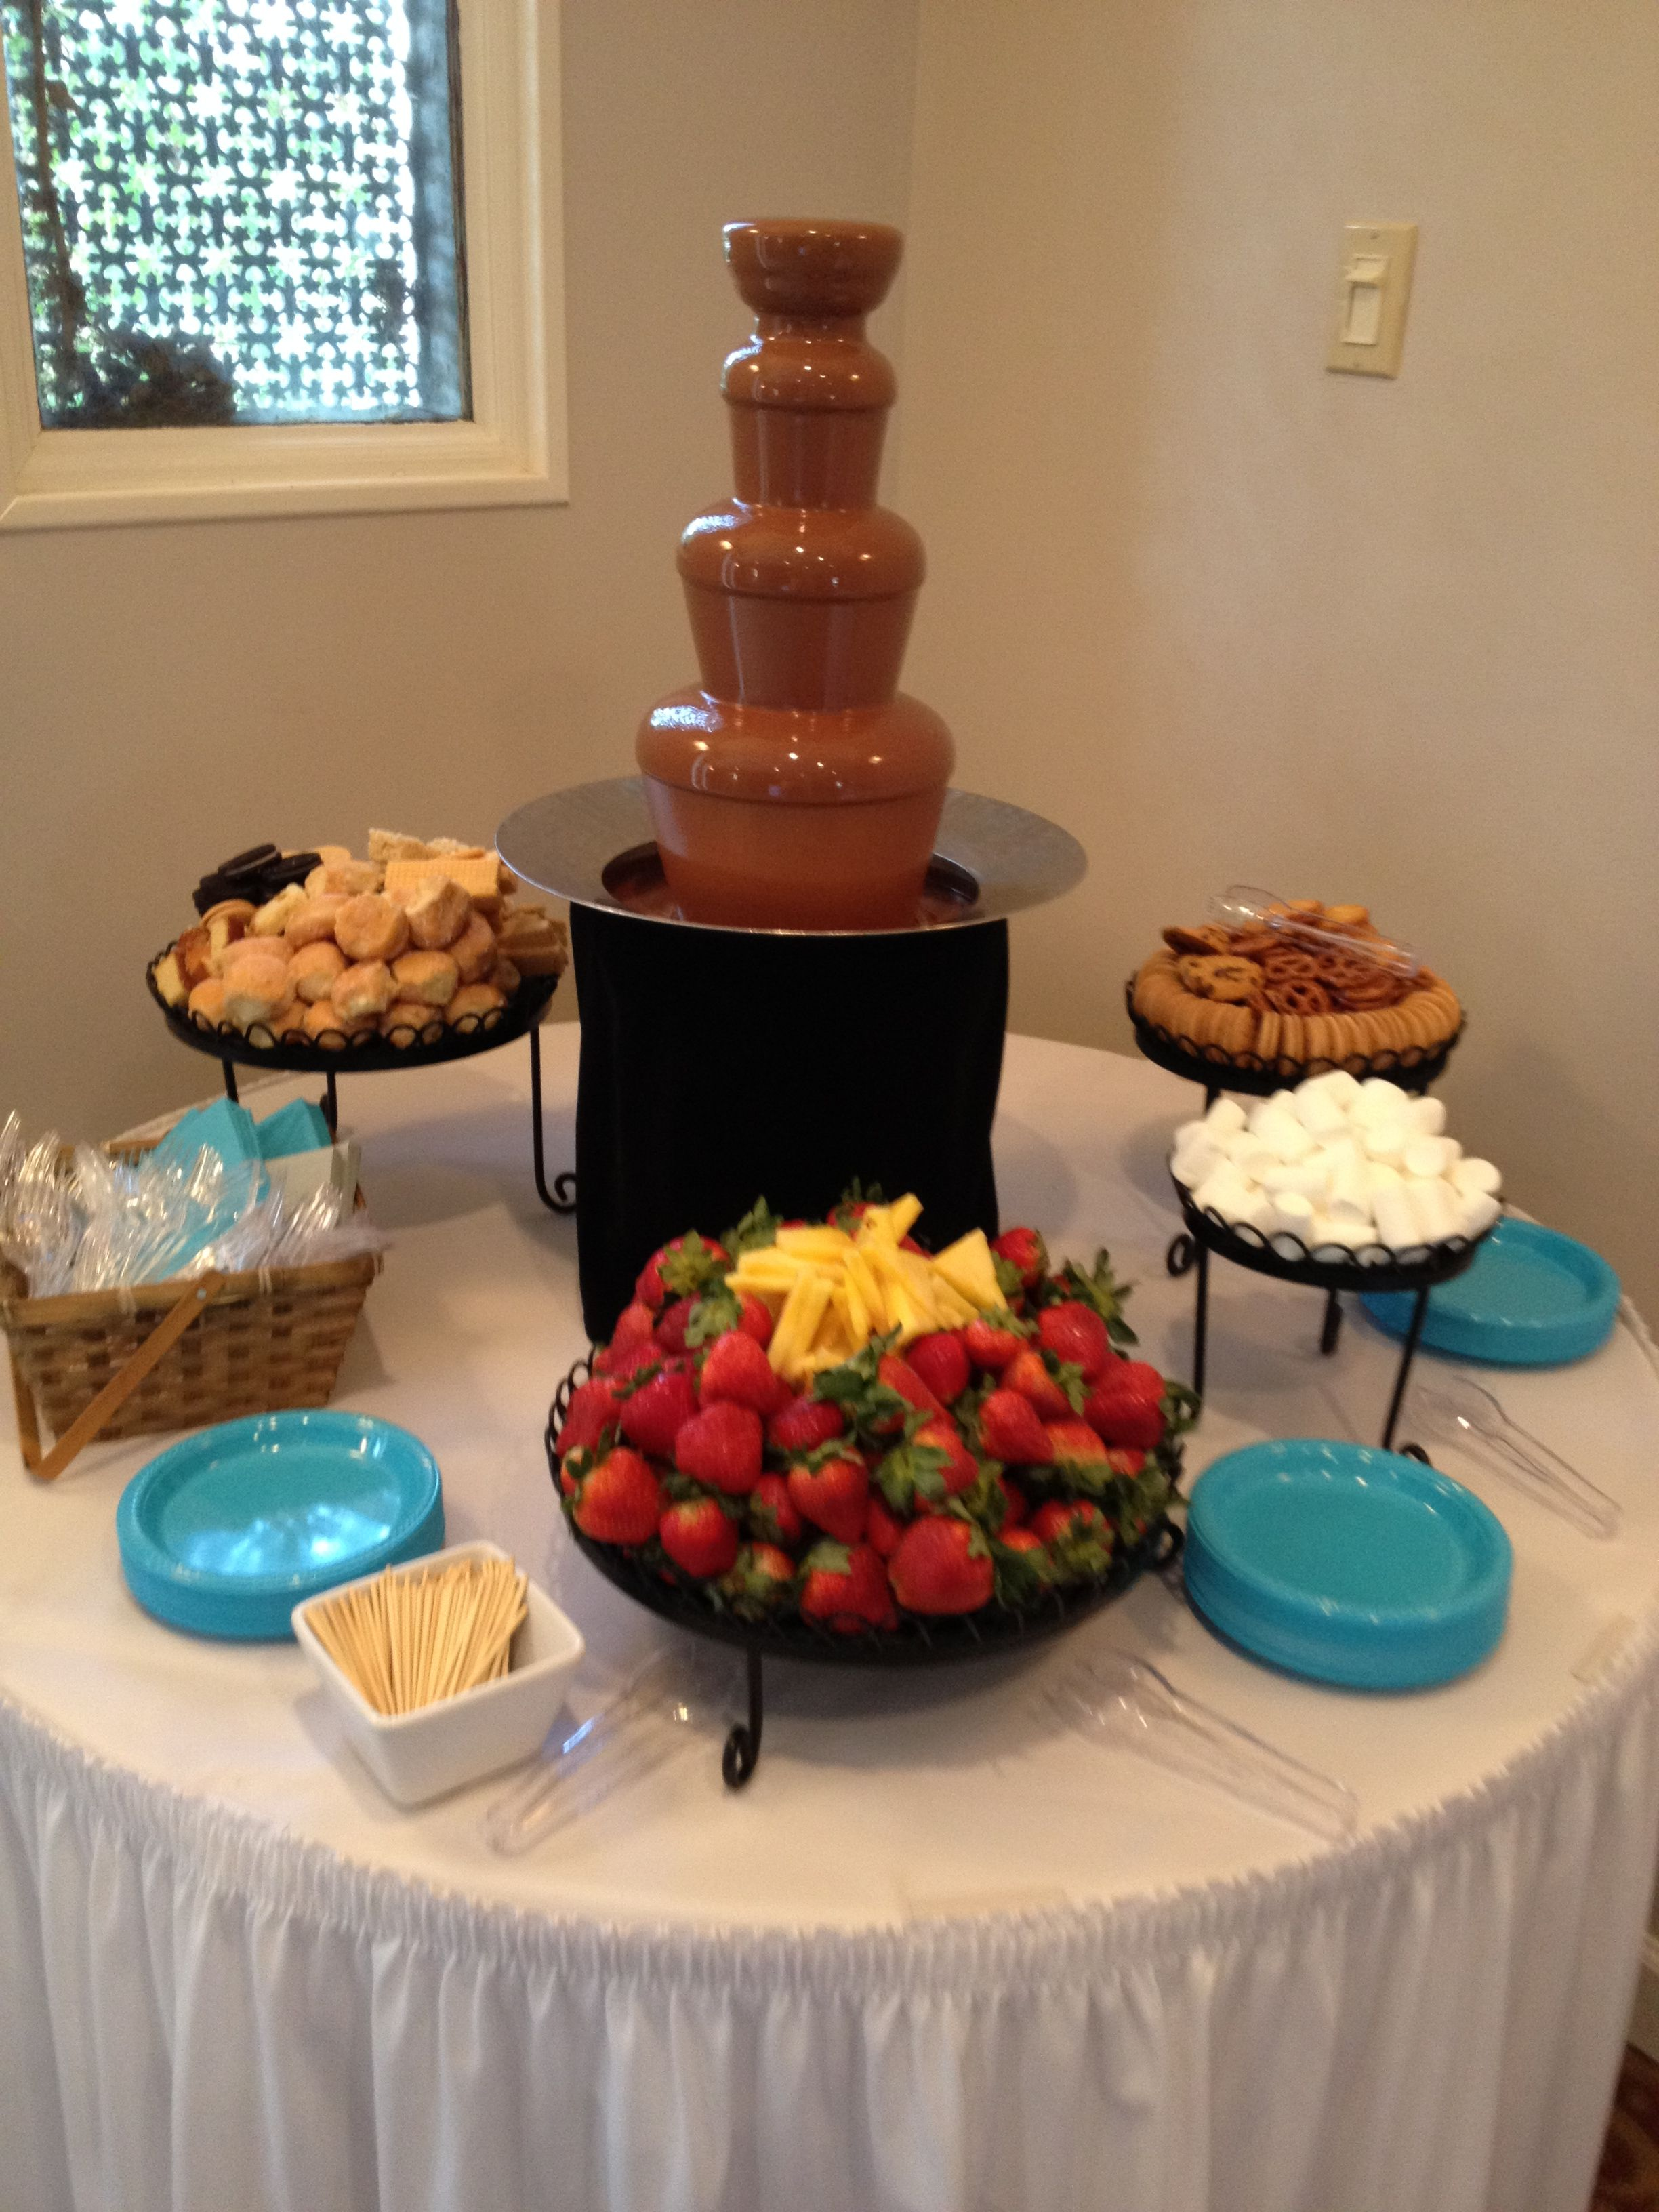 1000+ images about chocolate fountain on Pinterest |Chocolate Fountain Ideas